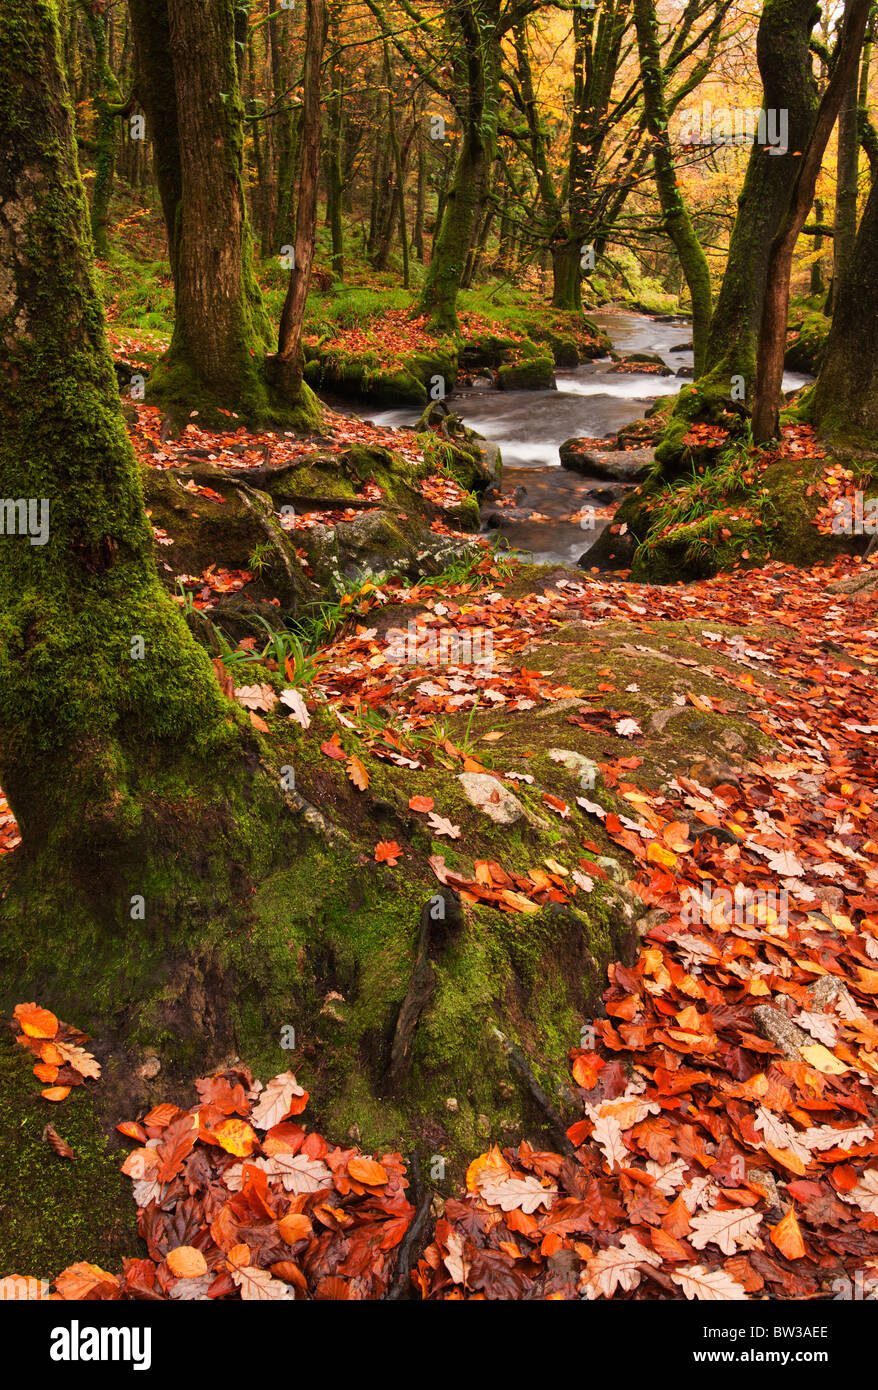 Carpet of fallen Autumn leaves at Golitha Falls on the River Fowey near Liskeard, Cornwall - Stock Image